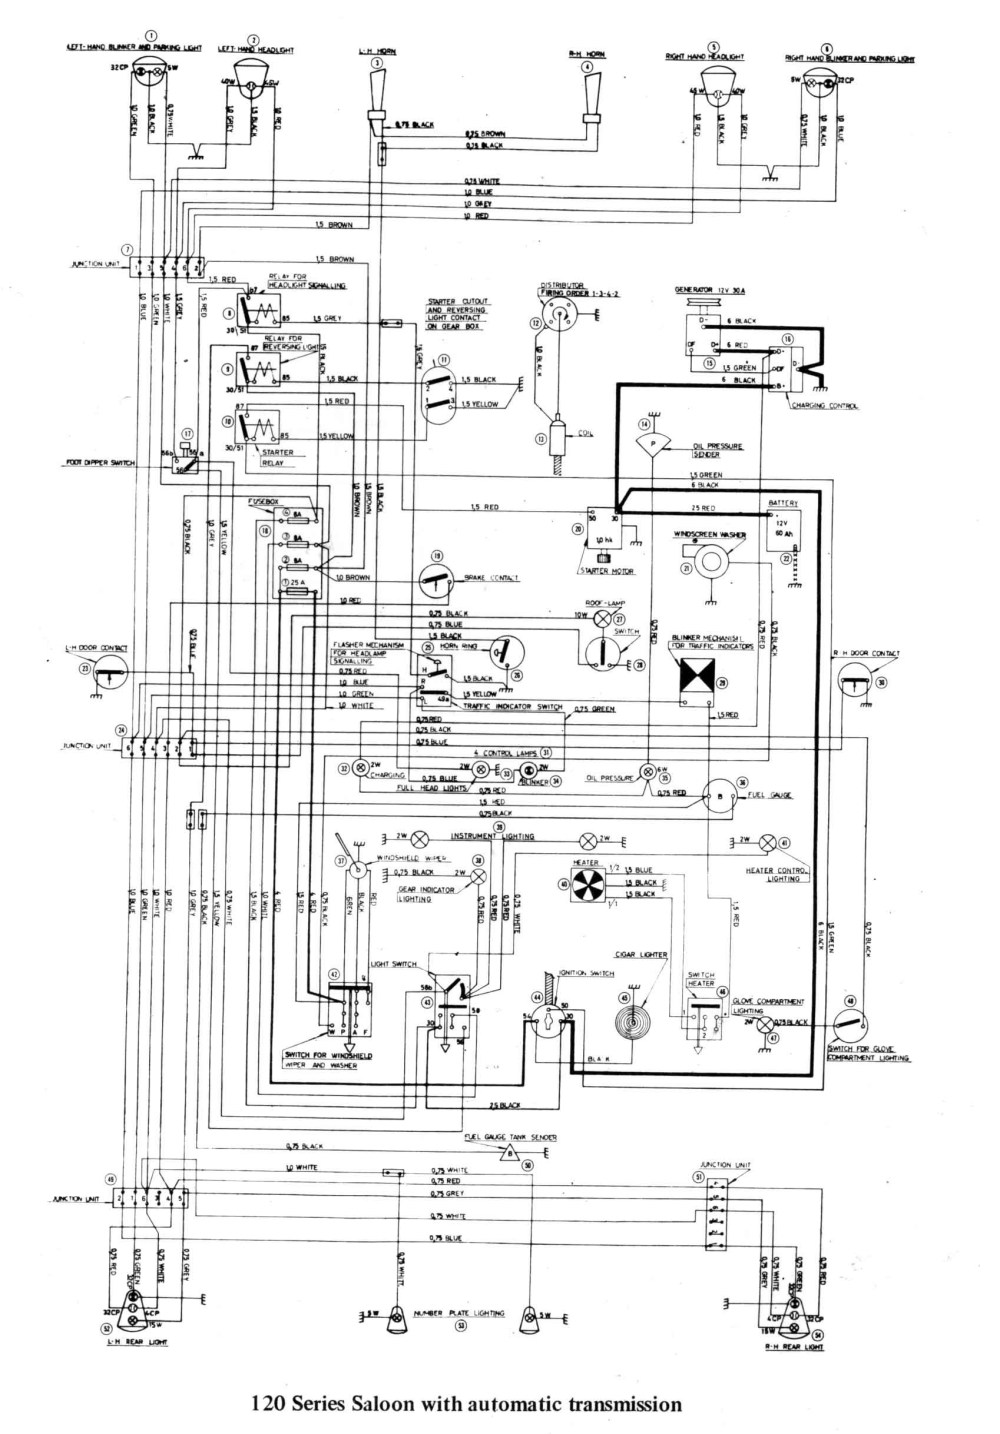 medium resolution of volvo white gmc fuse box diagram wiring diagram for light switch u2022 2004 ford expedition